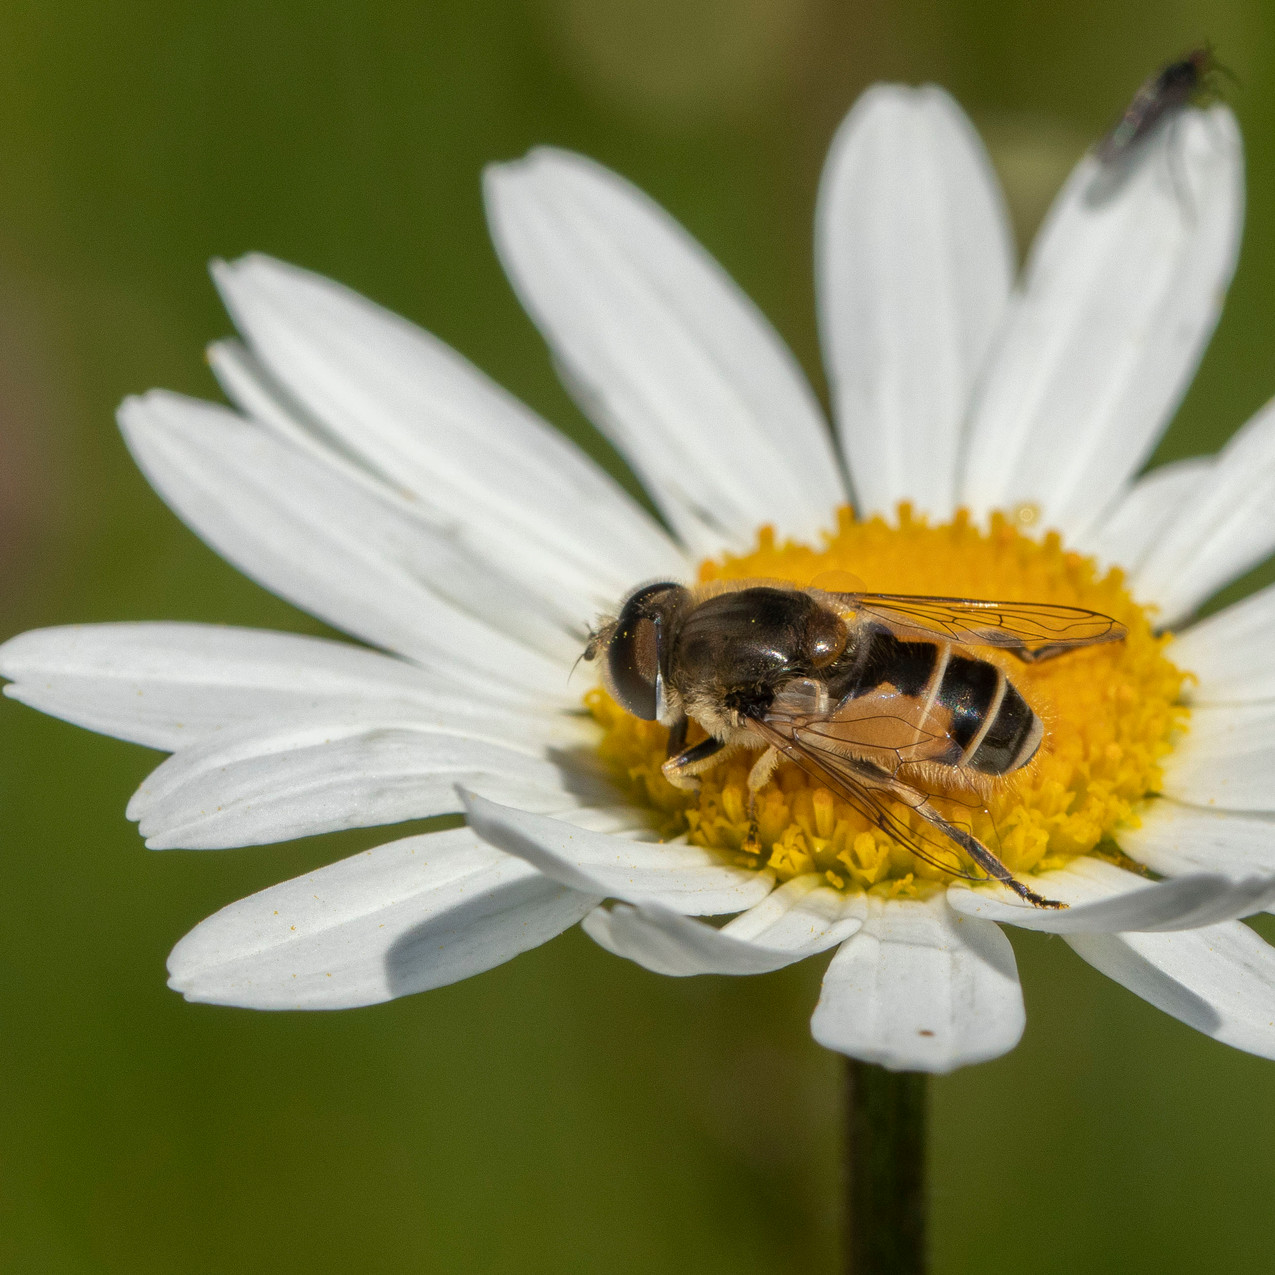 25th May 2020 _Hoverfly _Hatton Meadows